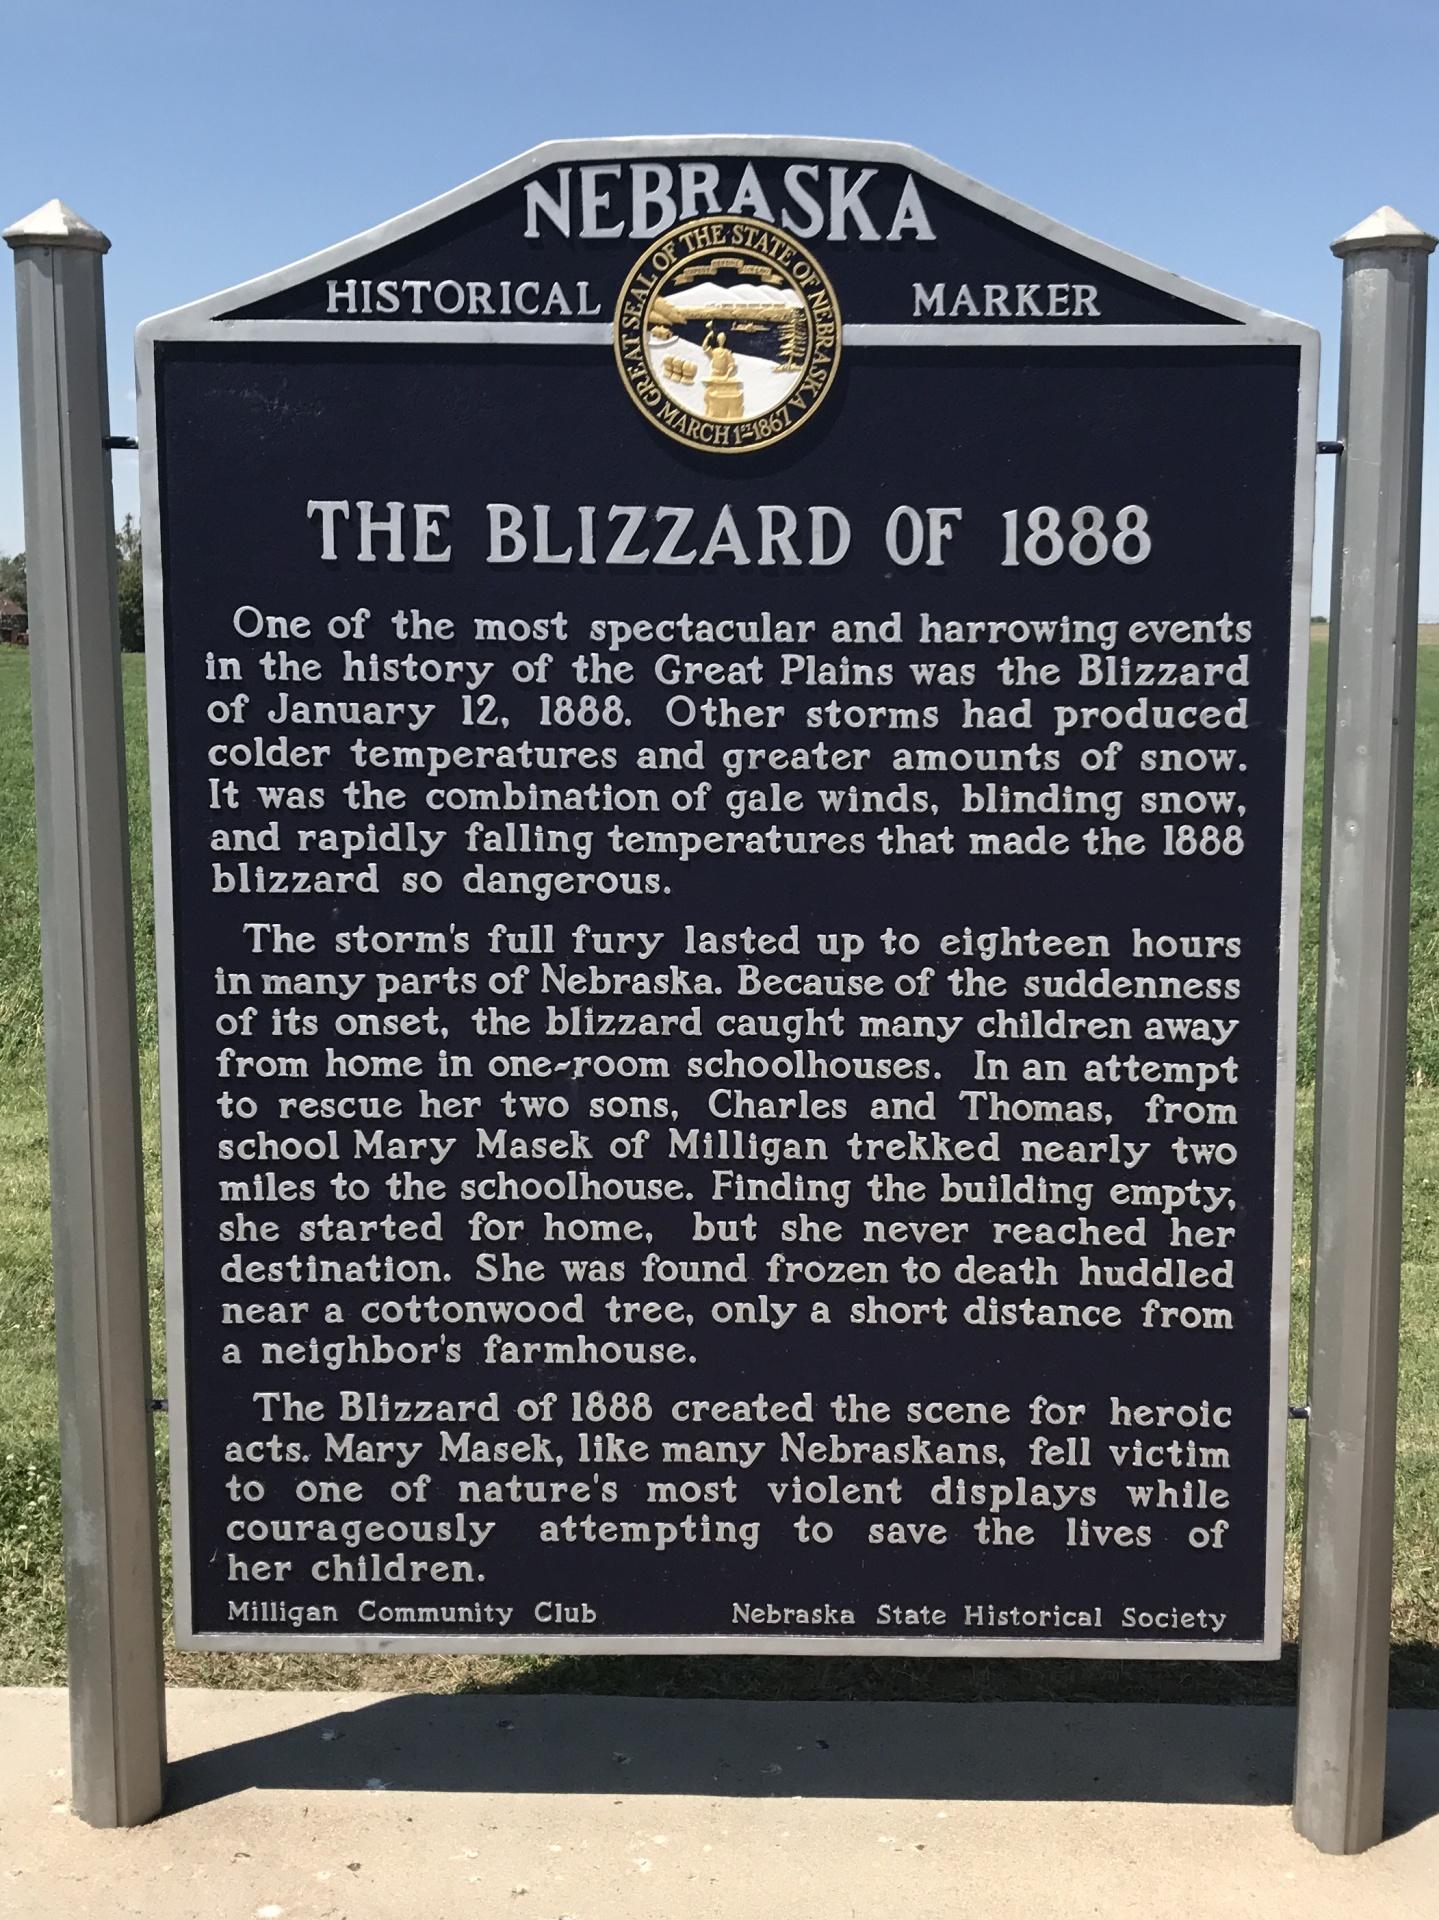 Blizzard of 1888 - NE HWY 41 E of Milligan